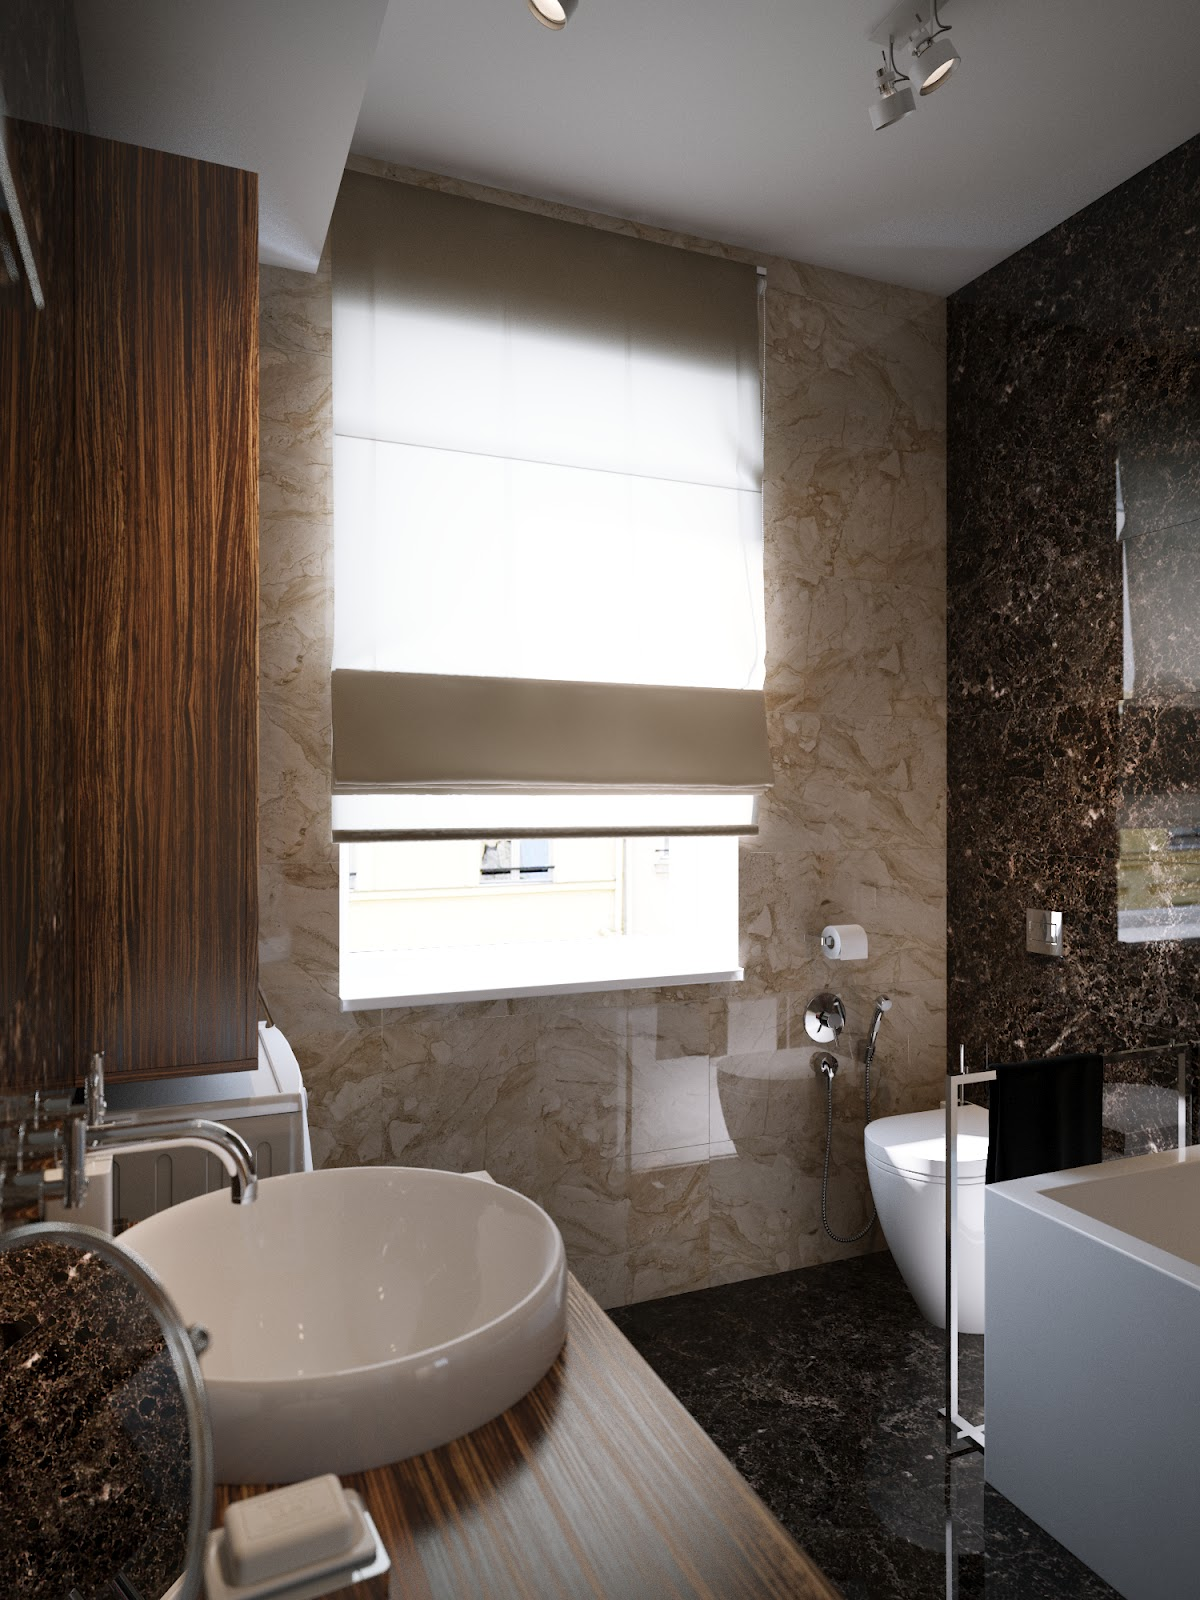 Modern bathroom design scheme interior design ideas for Contemporary bathroom design